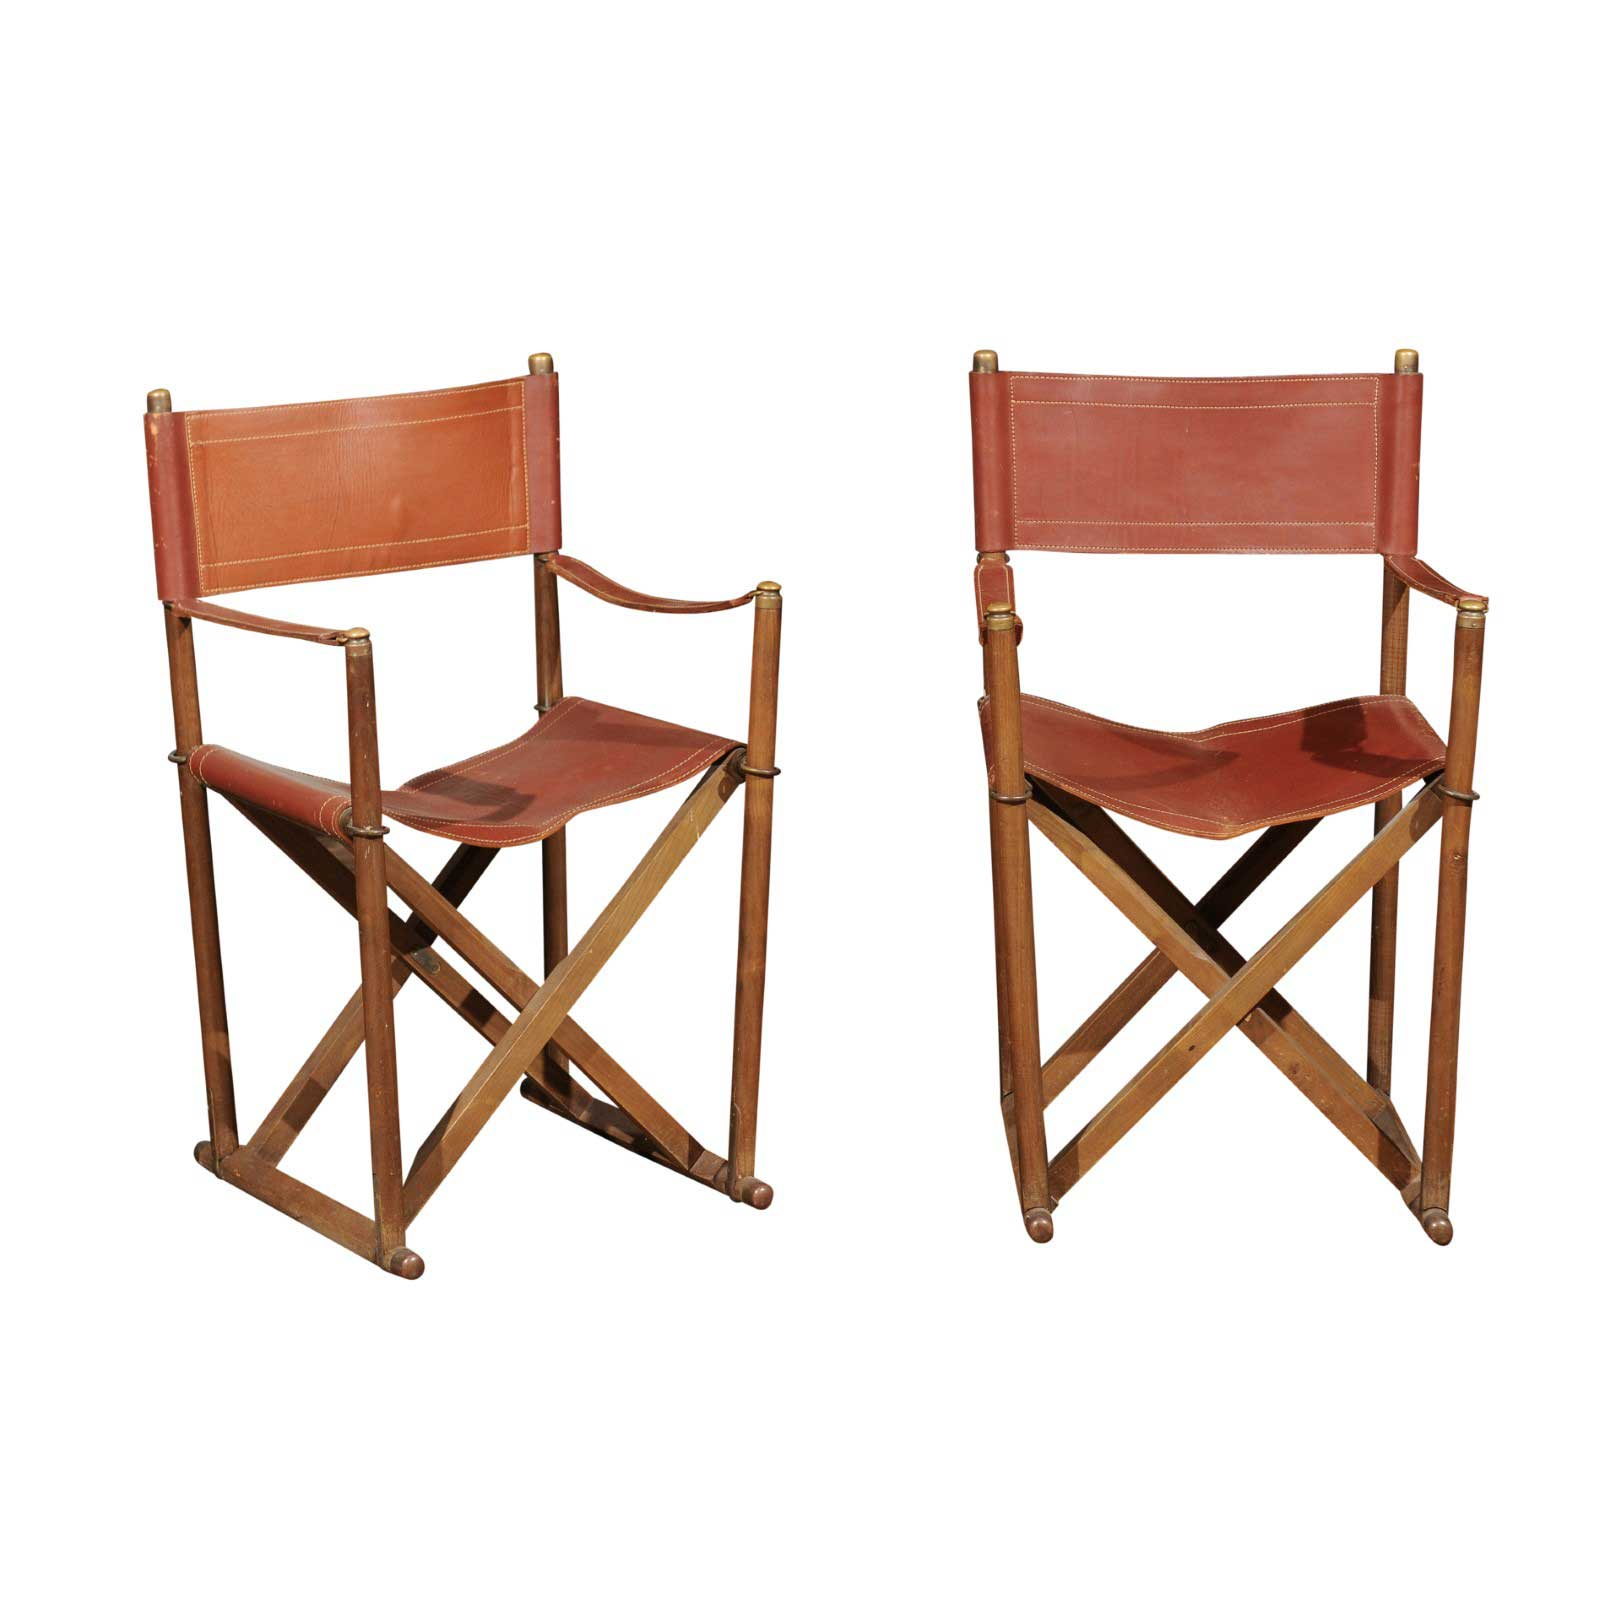 Safari Chairs Pair 1930 S Folding Campaign Style Leather Safari Chairs By Mogens Koch